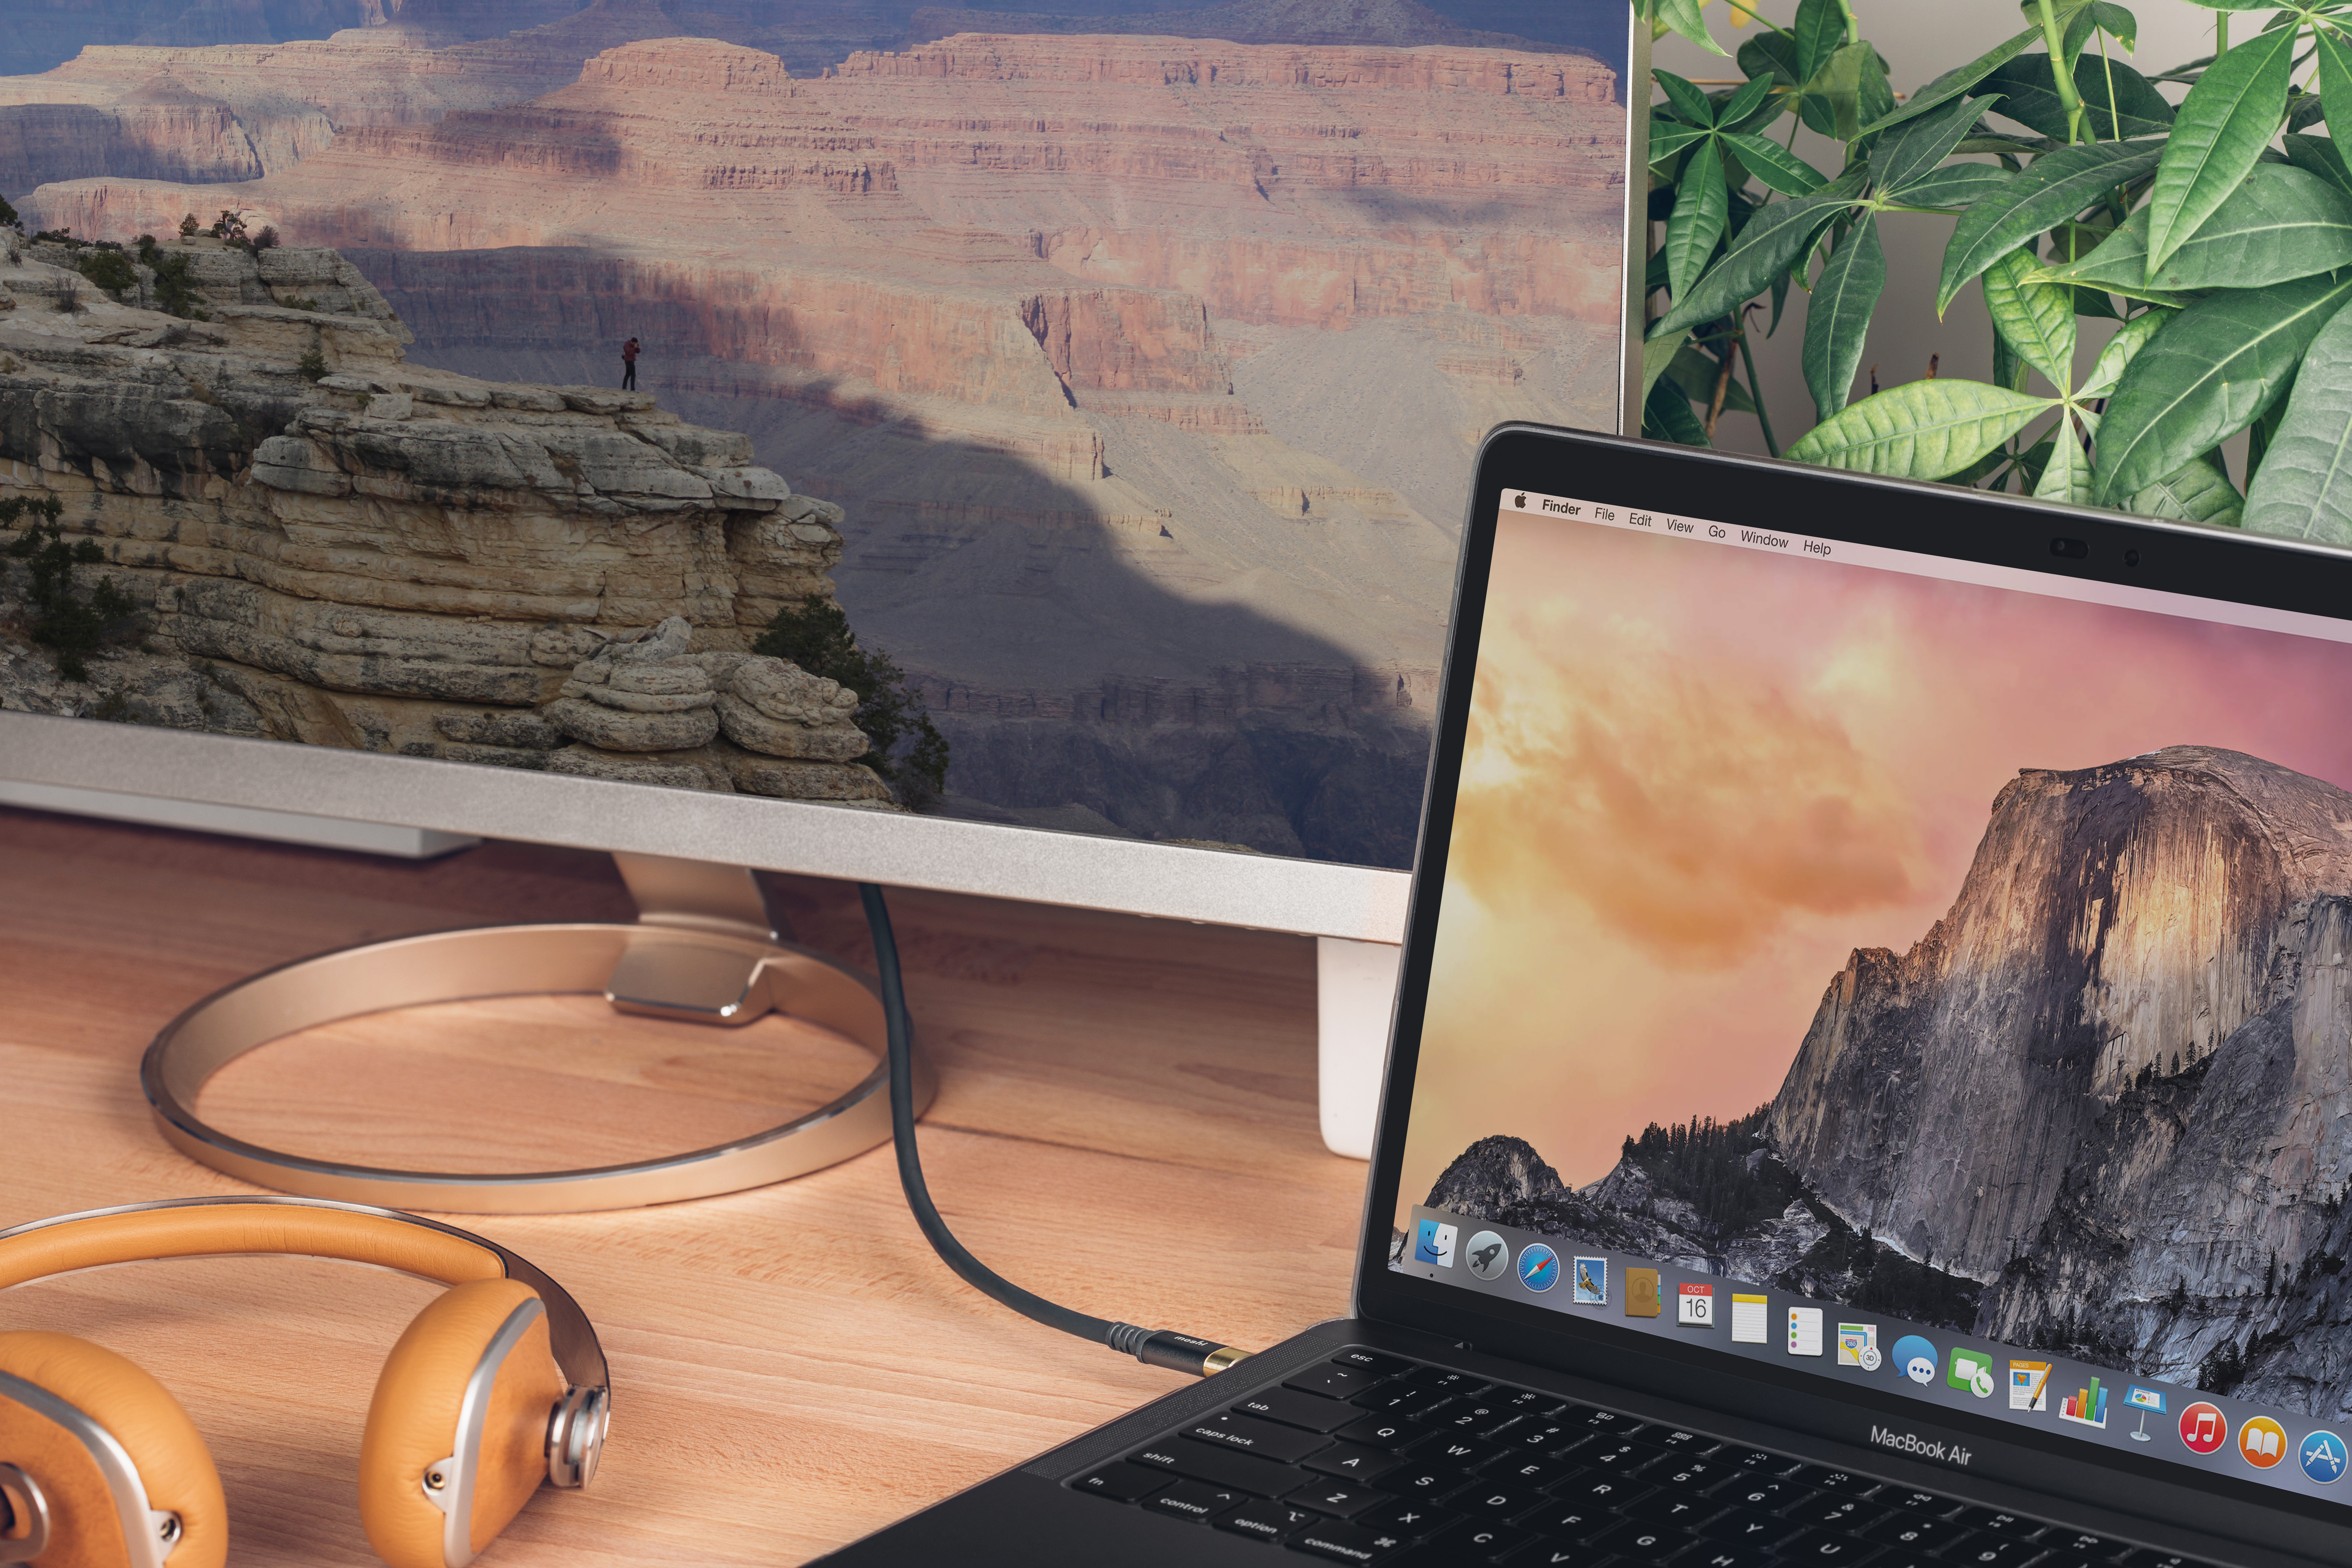 A desktop setup with a computer connected to a monitor using a USB-C monitor cable